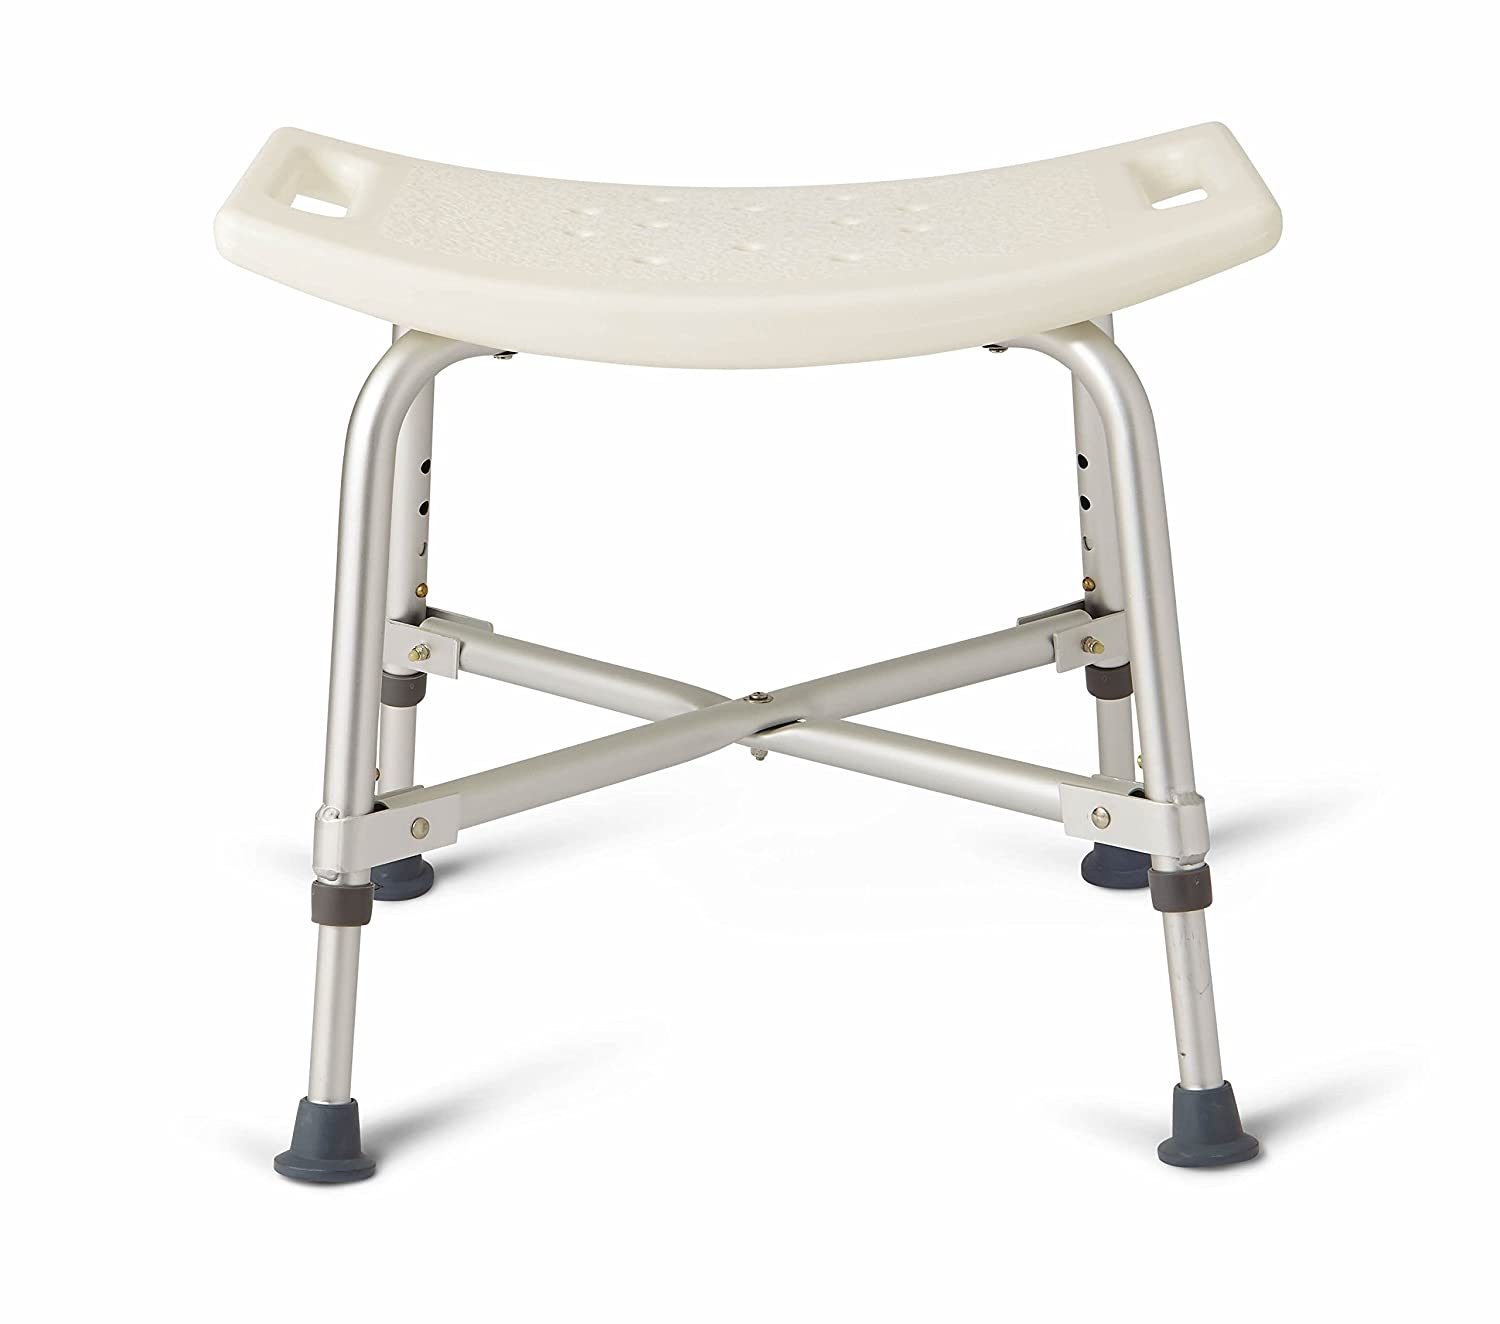 Amazon.com: Medline Heavy Duty Shower Chair Bath Bench without Back ...